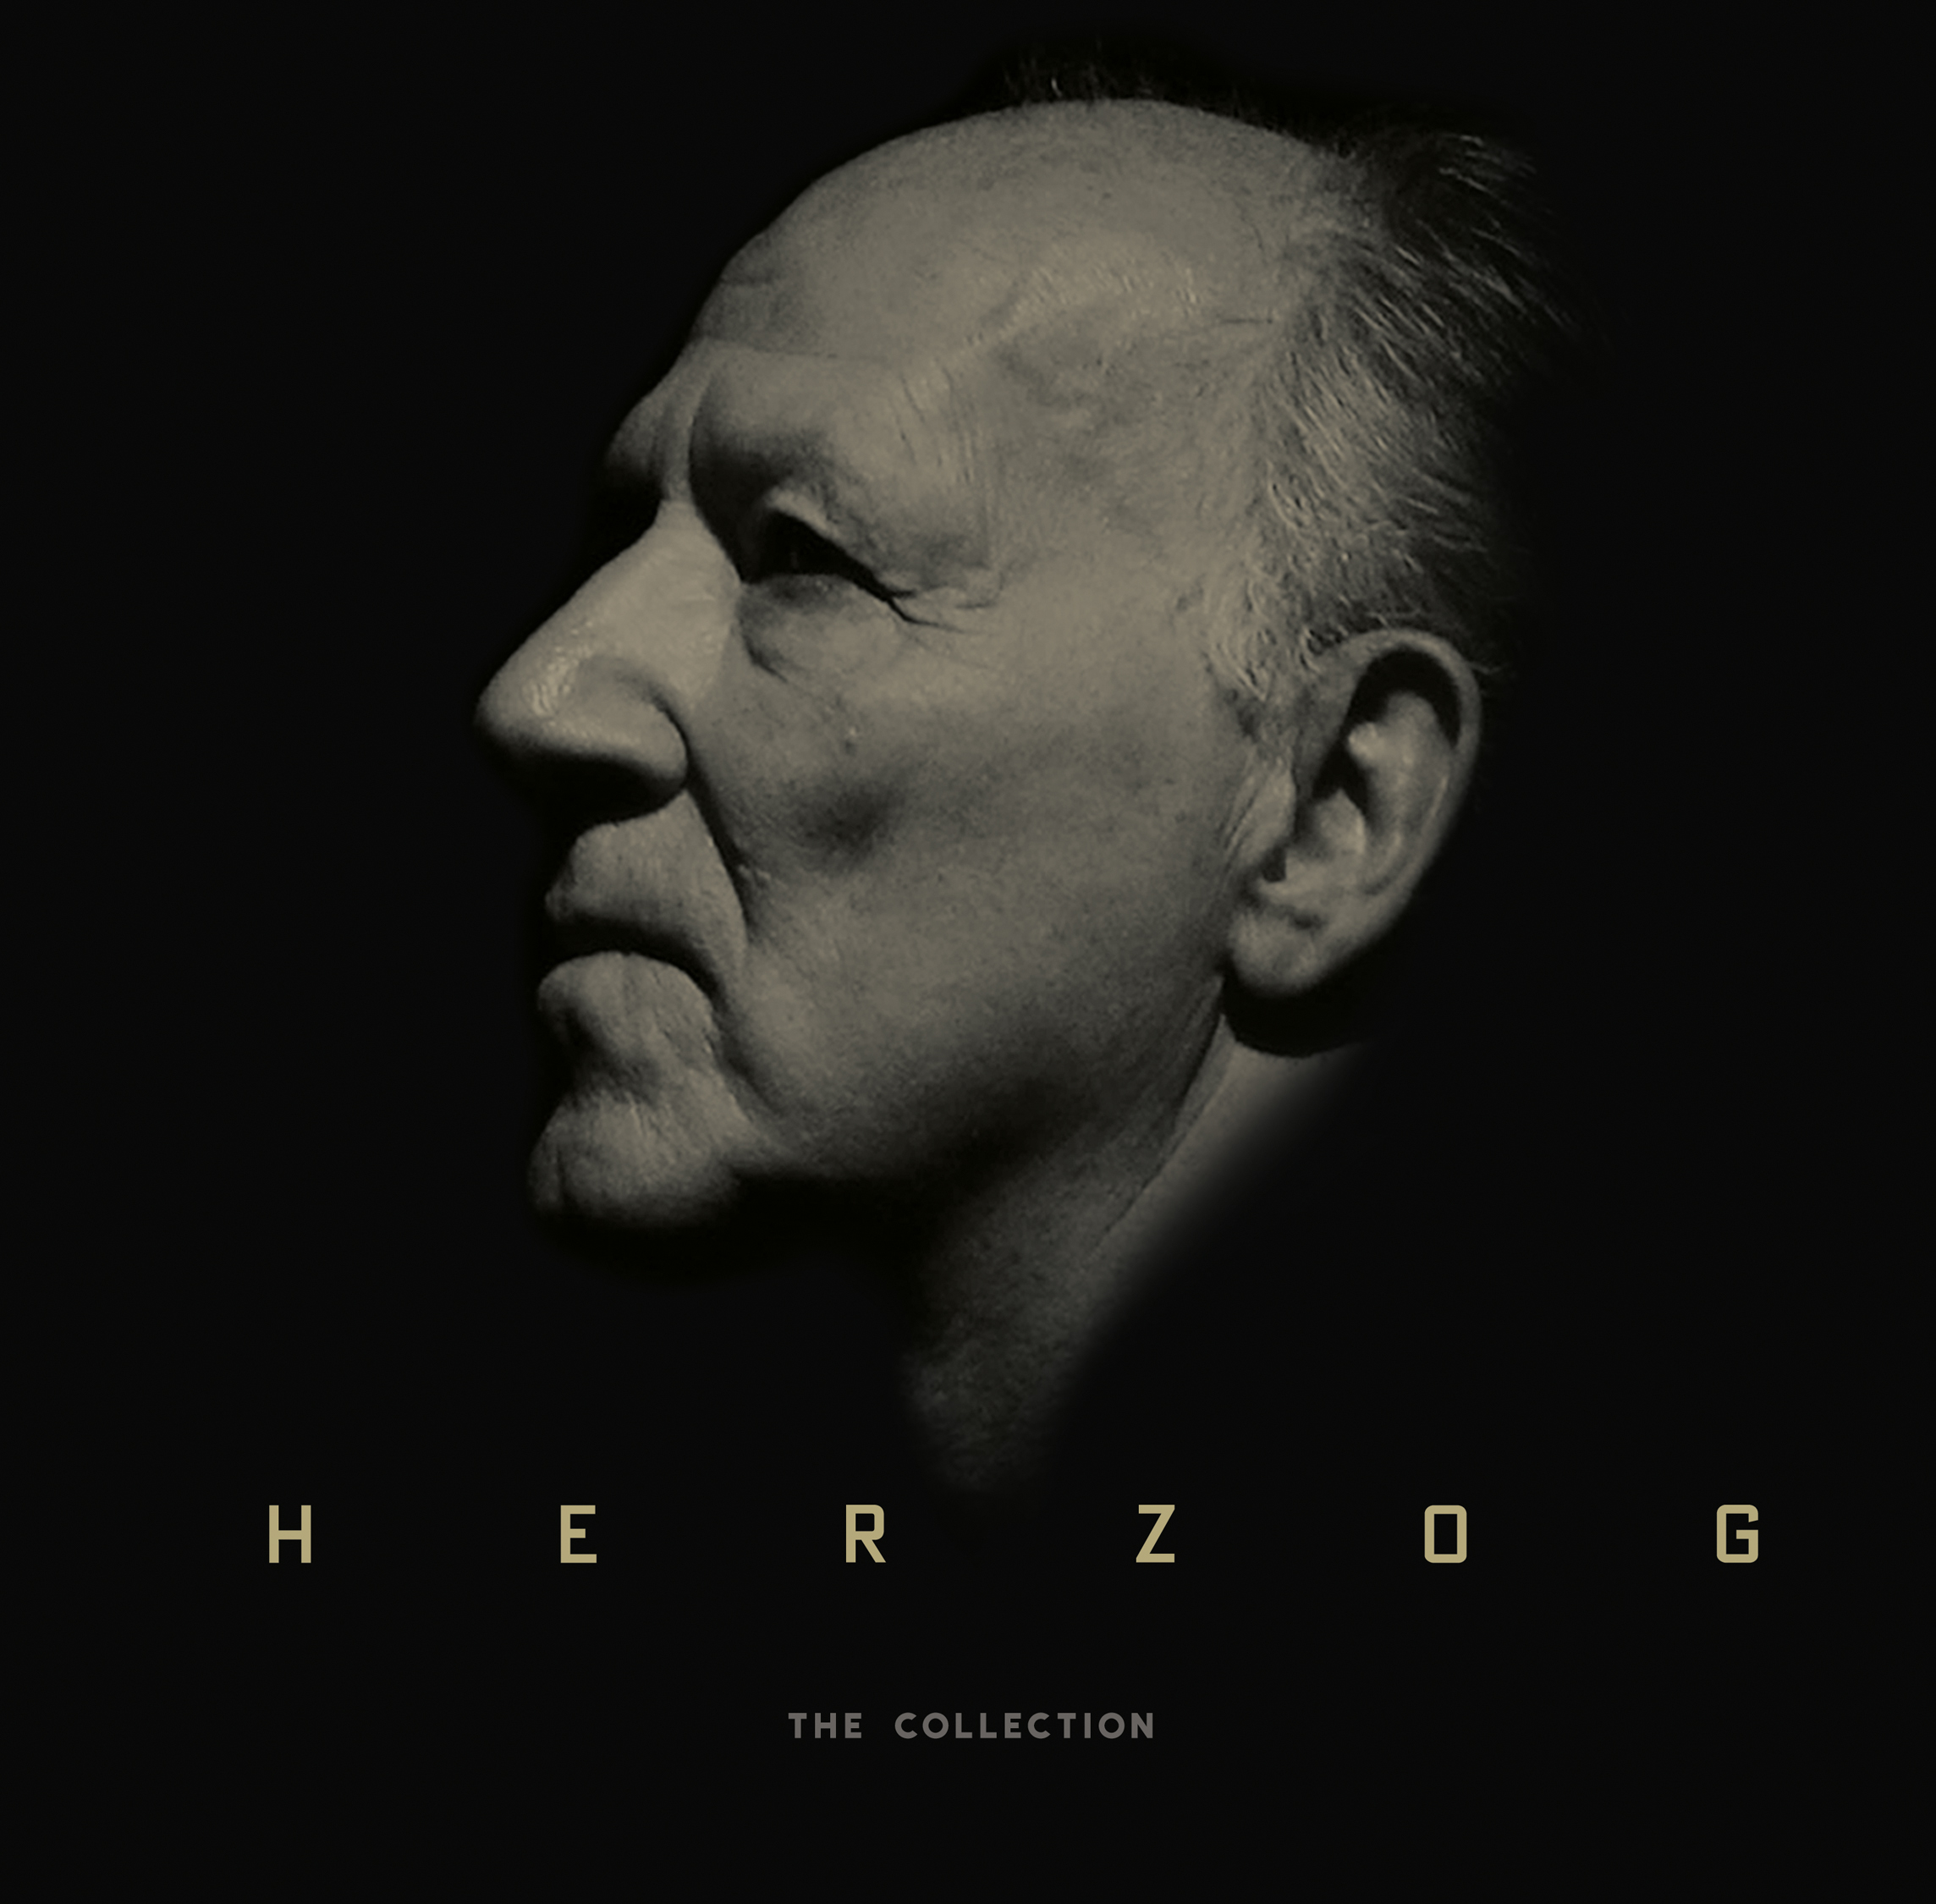 Herzog: The Collection [Limited Edition]